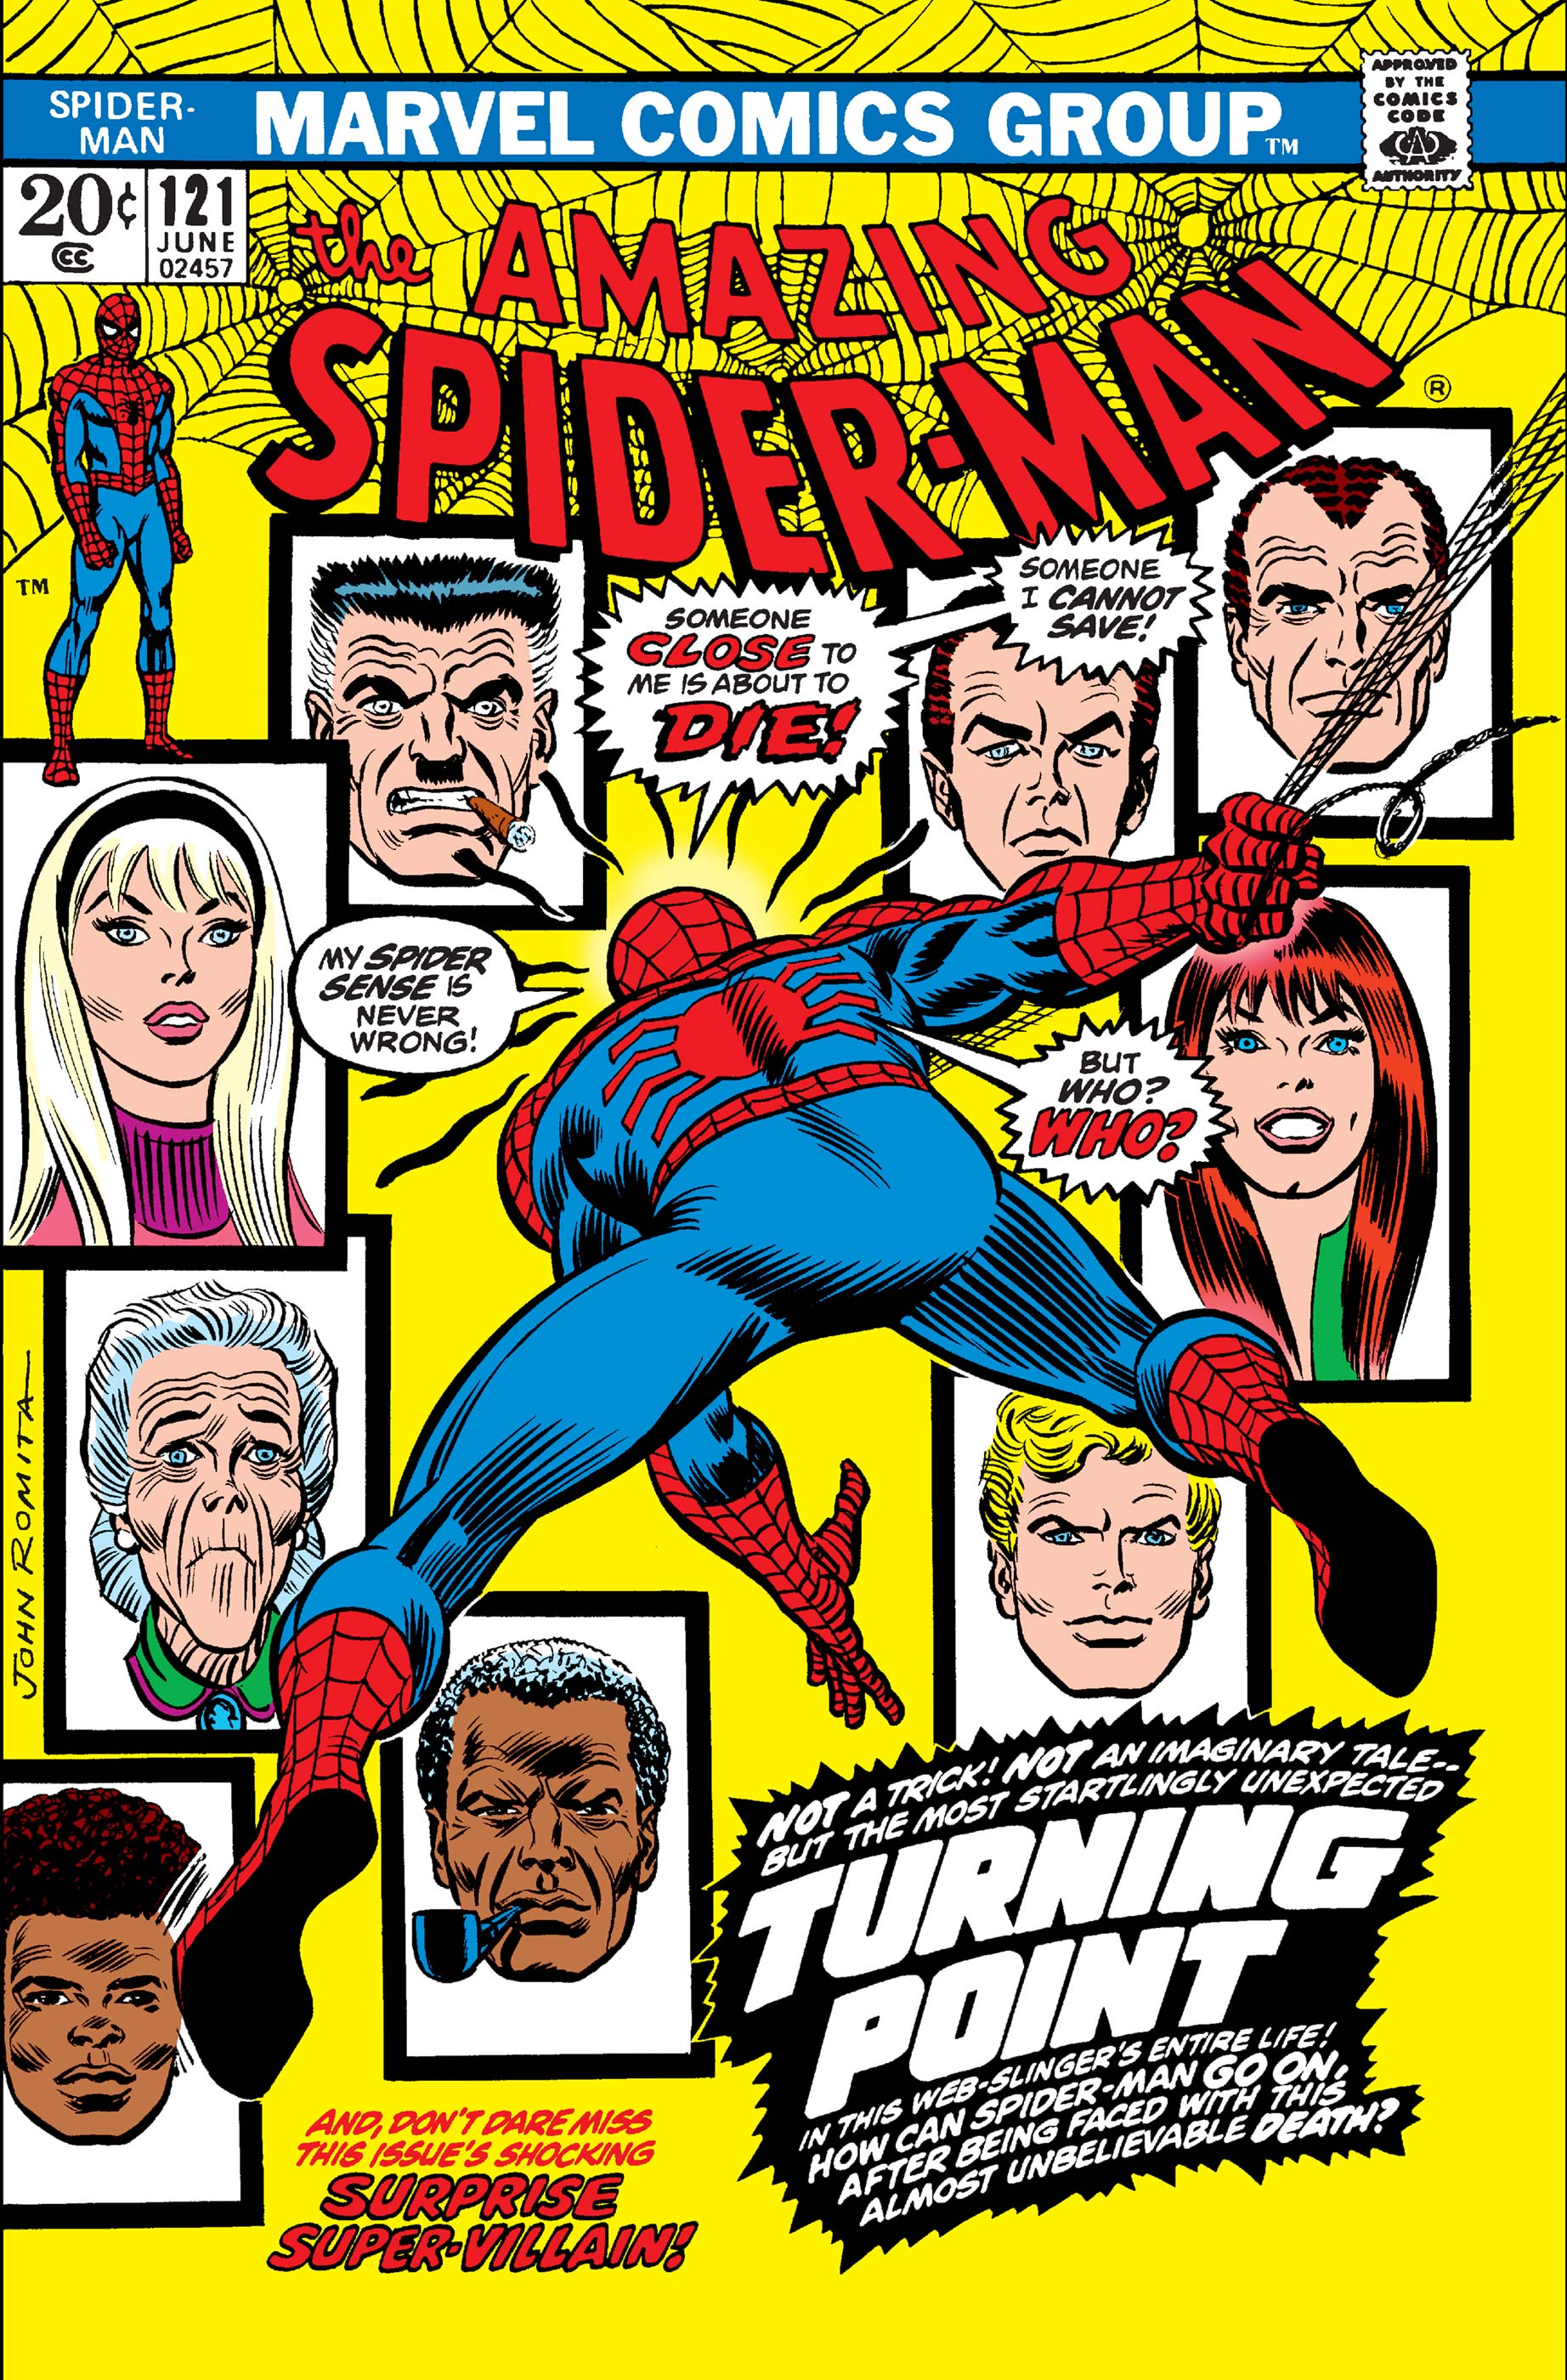 The Amazing Spider-Man (1963) #121